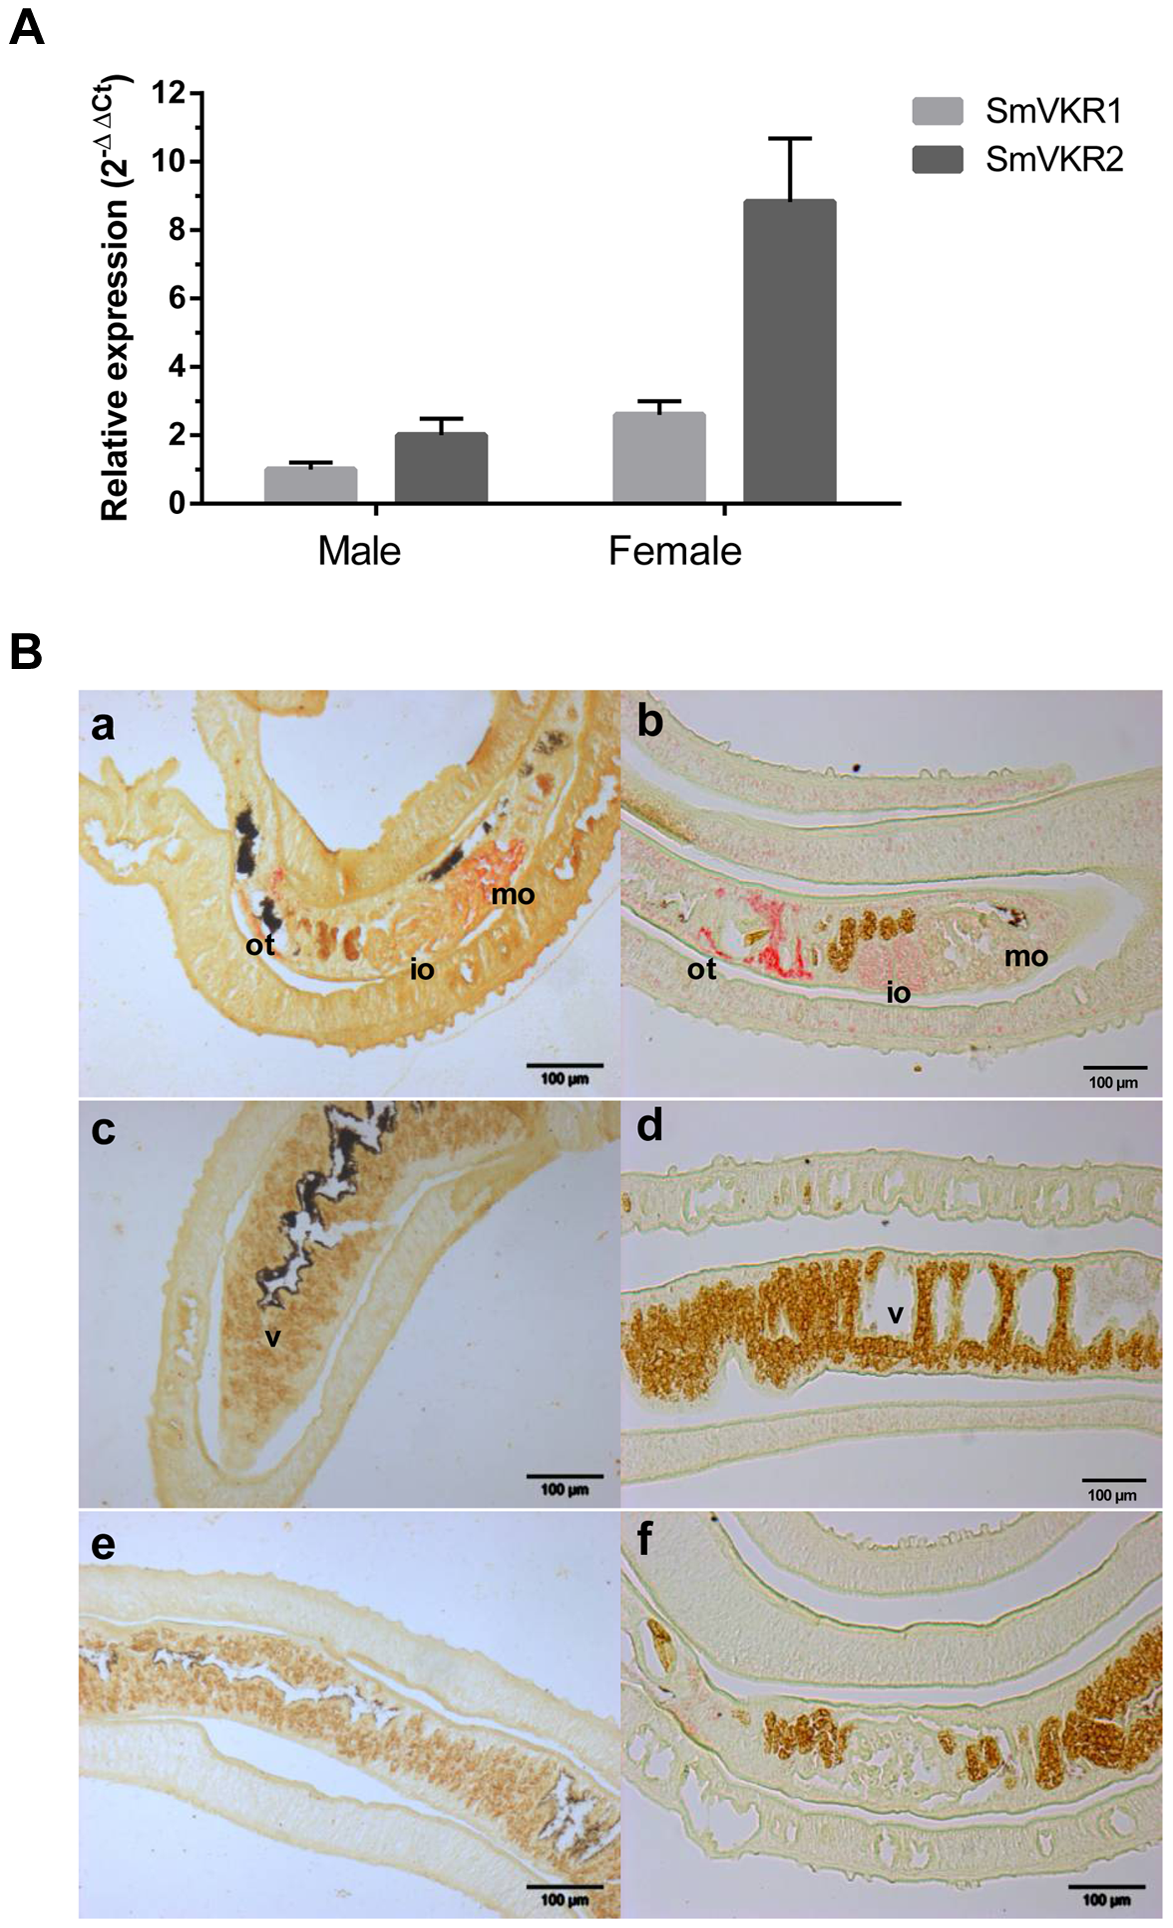 SmVKR1 and SmVKR2 expression patterns in adult worms.